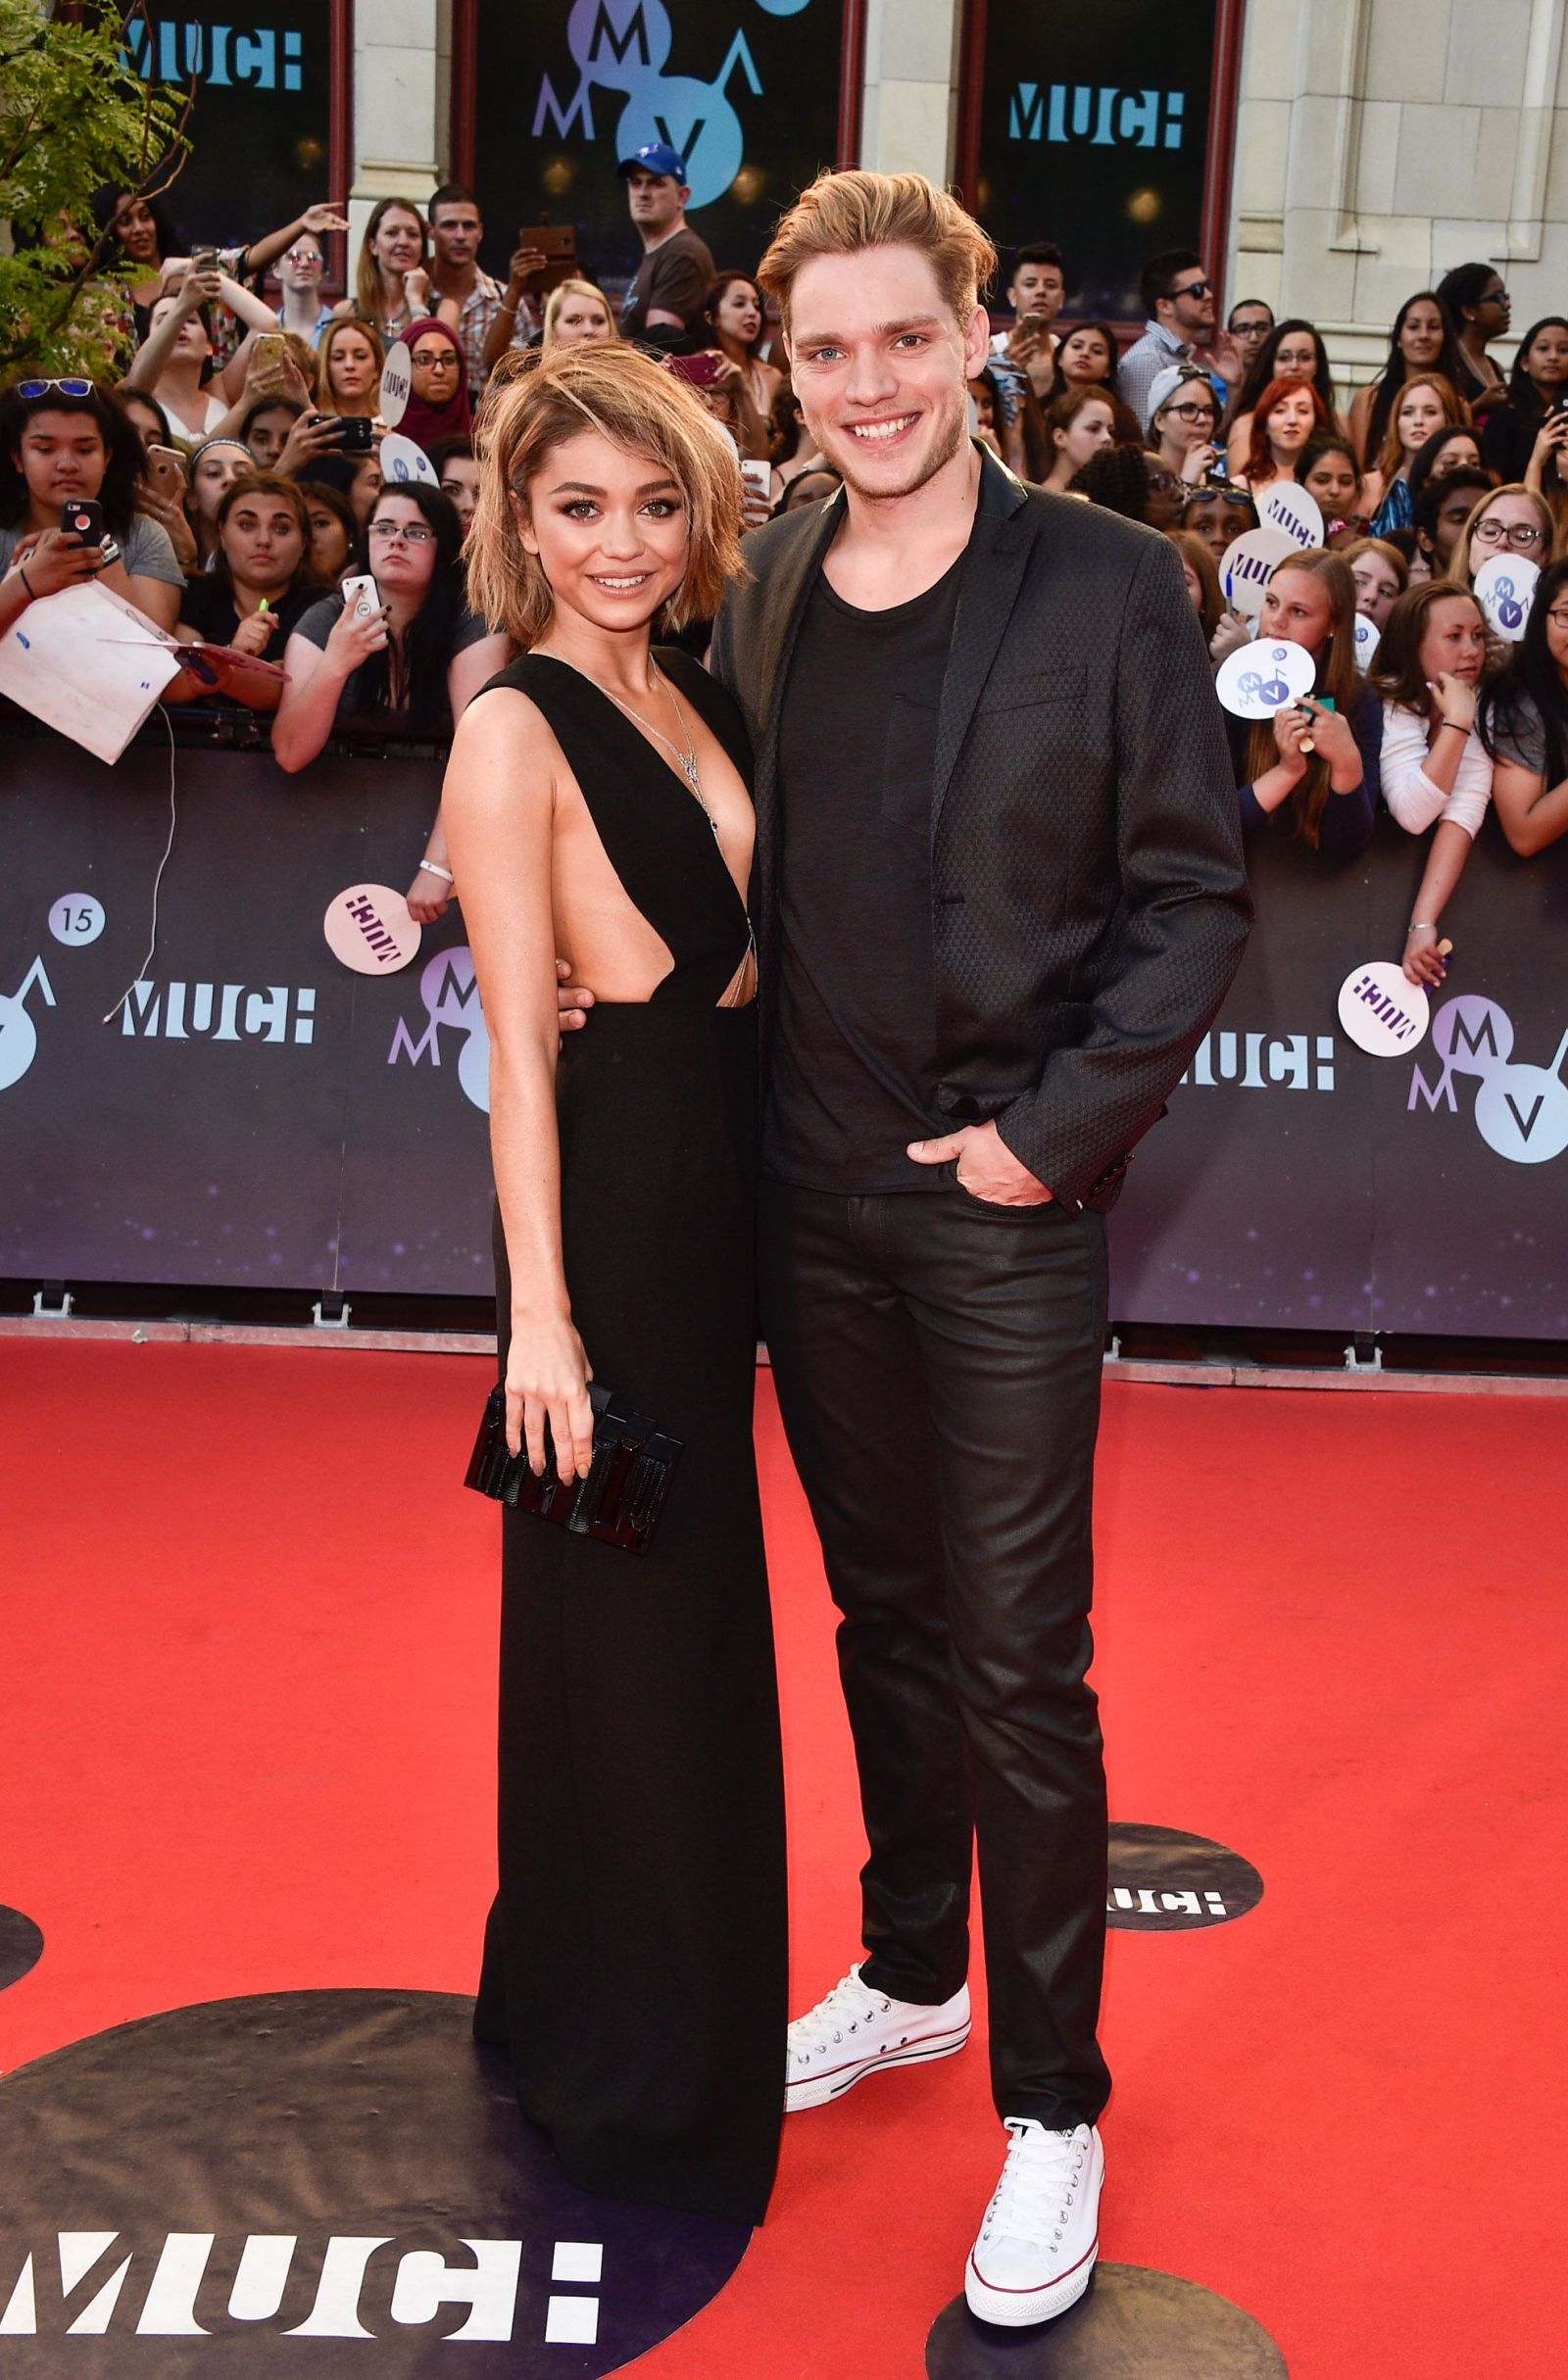 Sarah Hyland And Dominic Sherwood Just Took Their Relationship To A Whole New Level Promis Chroniken Der Unterwelt Constantin Film